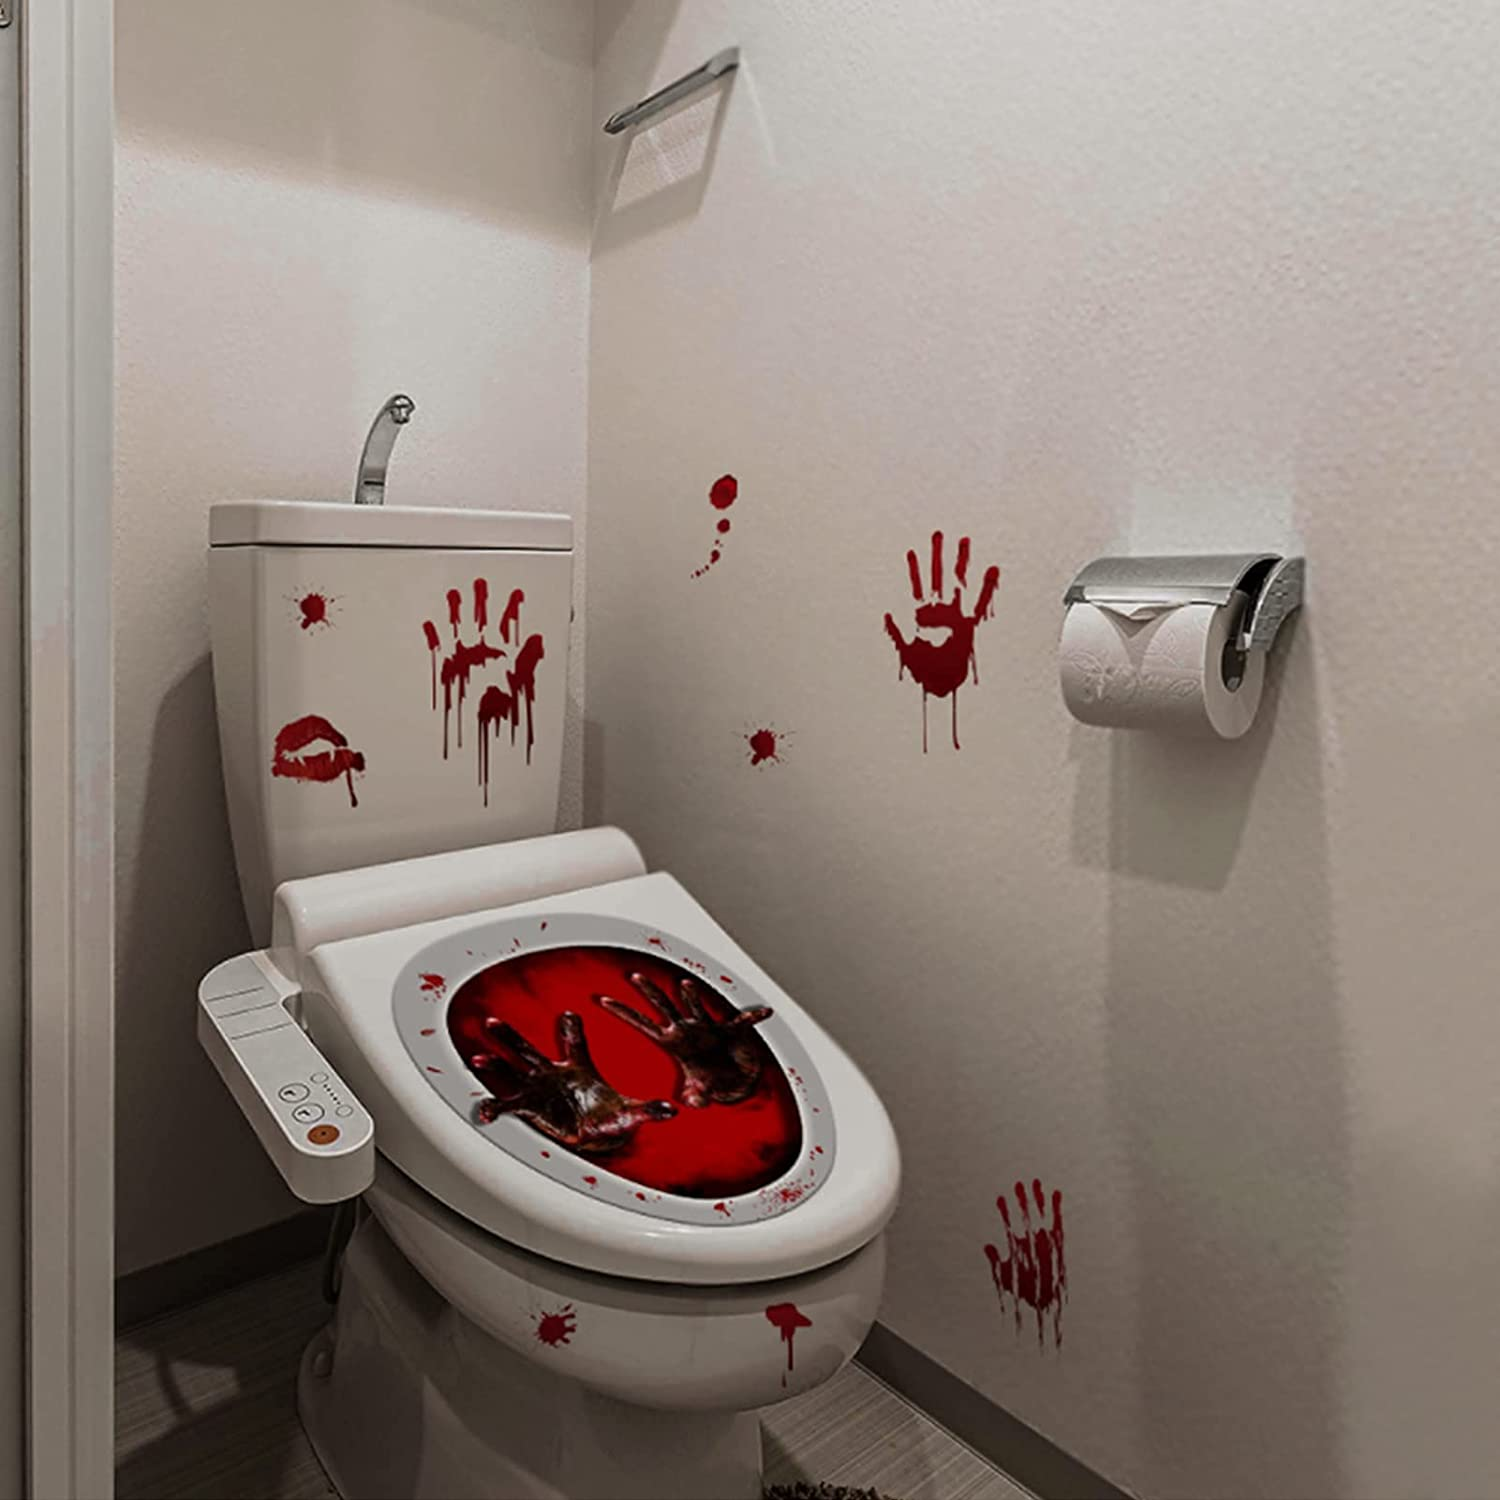 Gifts Halloween low-pricing Toilet Lid Decals Decorations Scary C Stickers